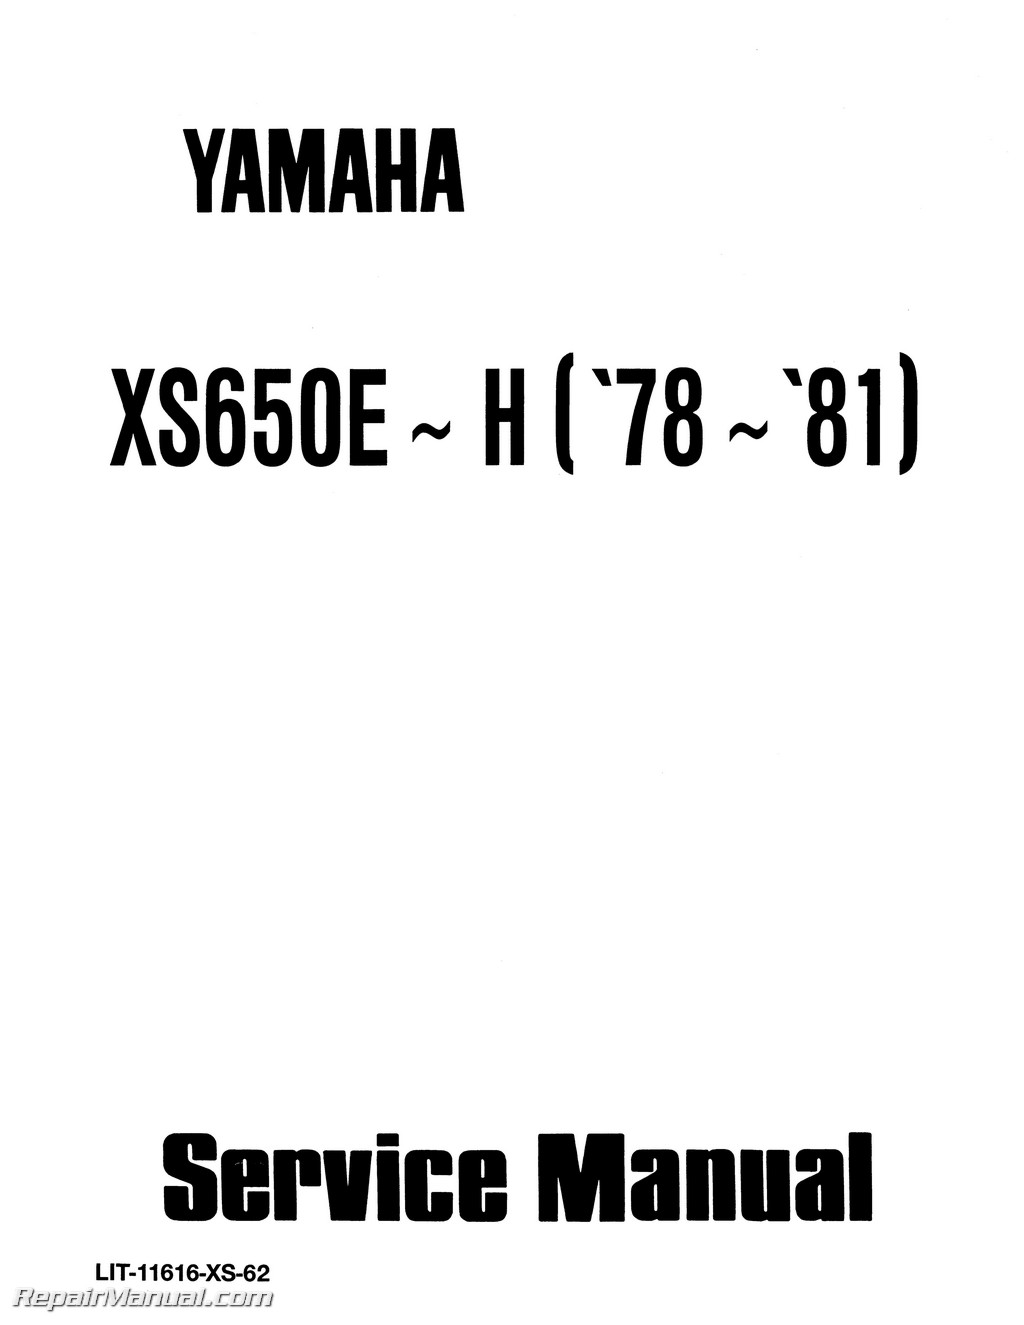 1978 1981 Yamaha Xs650 Service Manual Simple Wiring Diagram Electronic Ignition